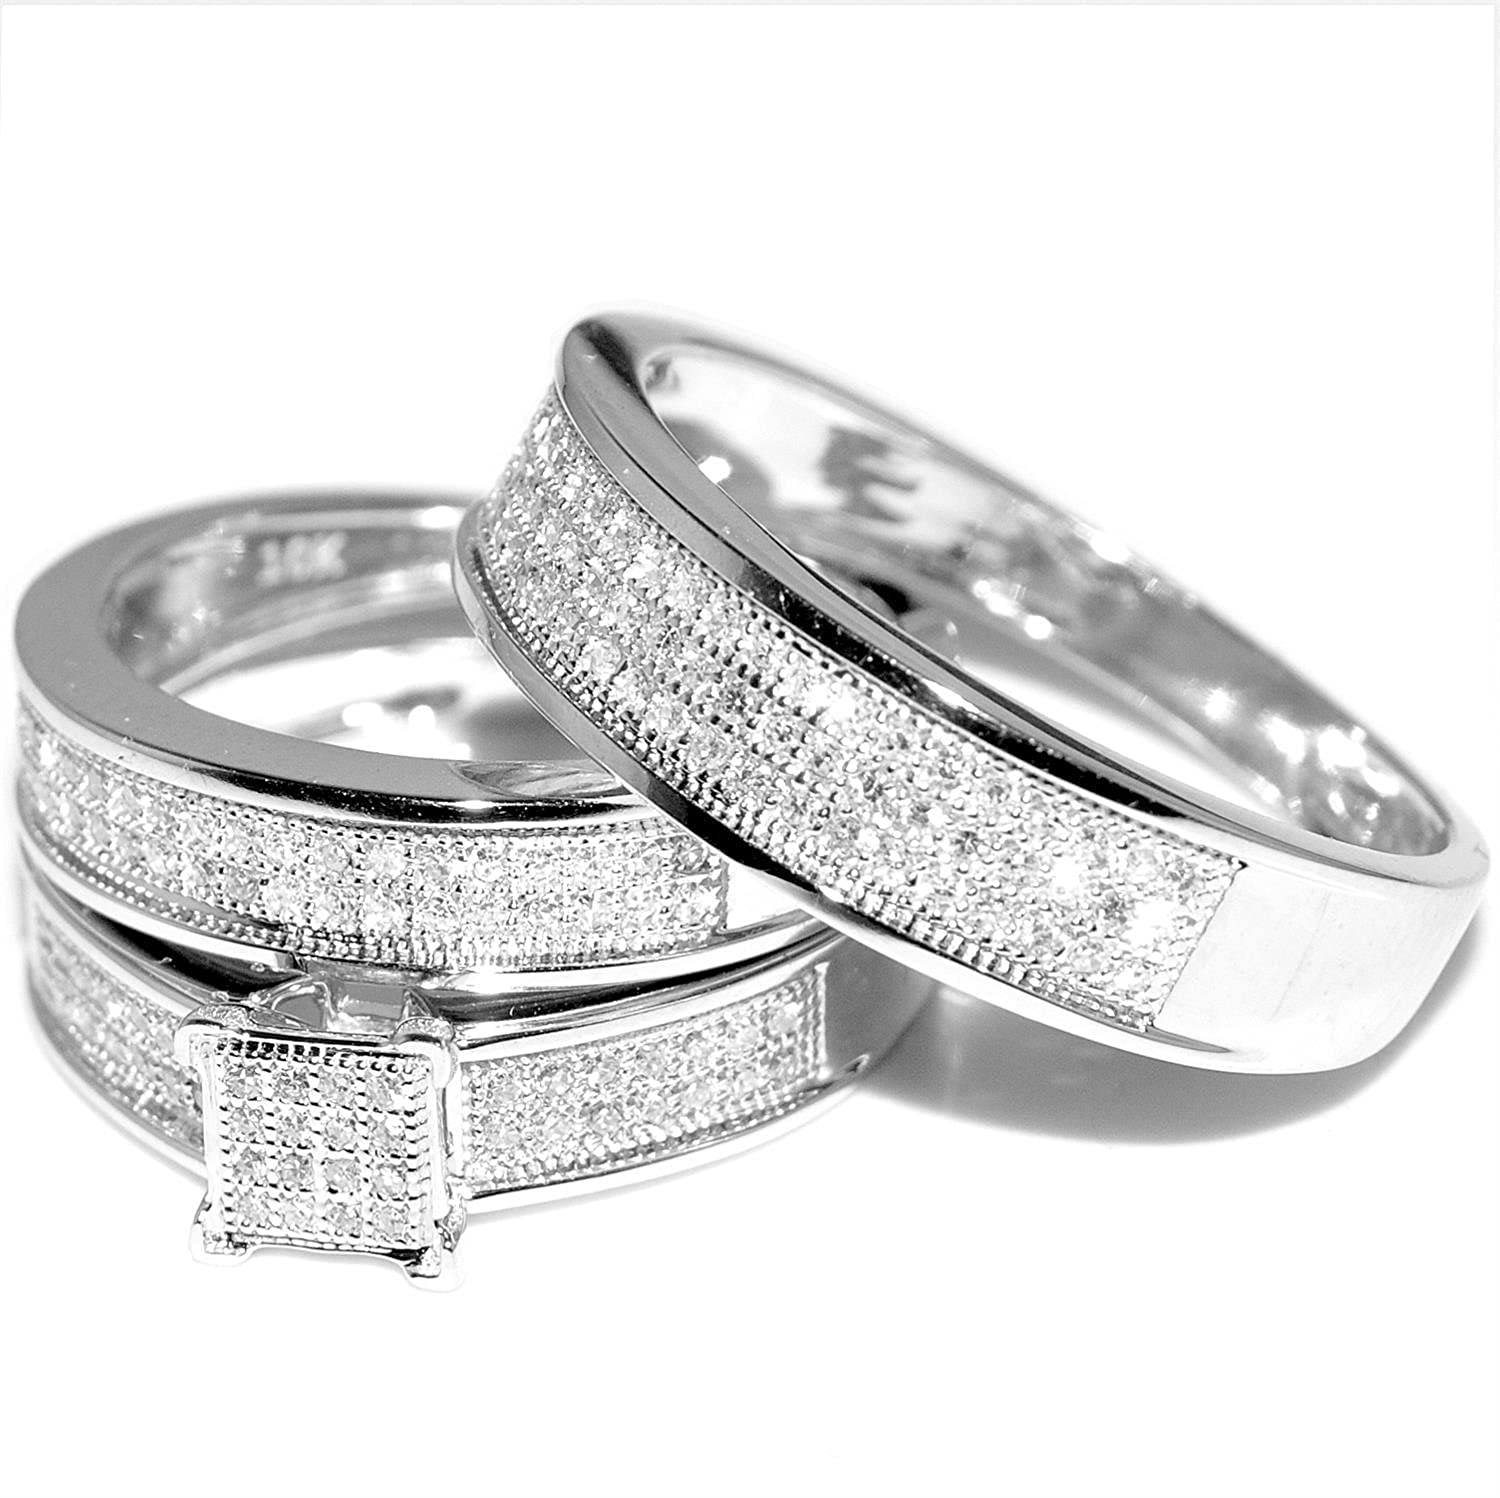 Wedding Rings Sets His And Hers For Cheap | White Gold Trio Wedding Set Mens Womens Wedding Rings Matching 0 40